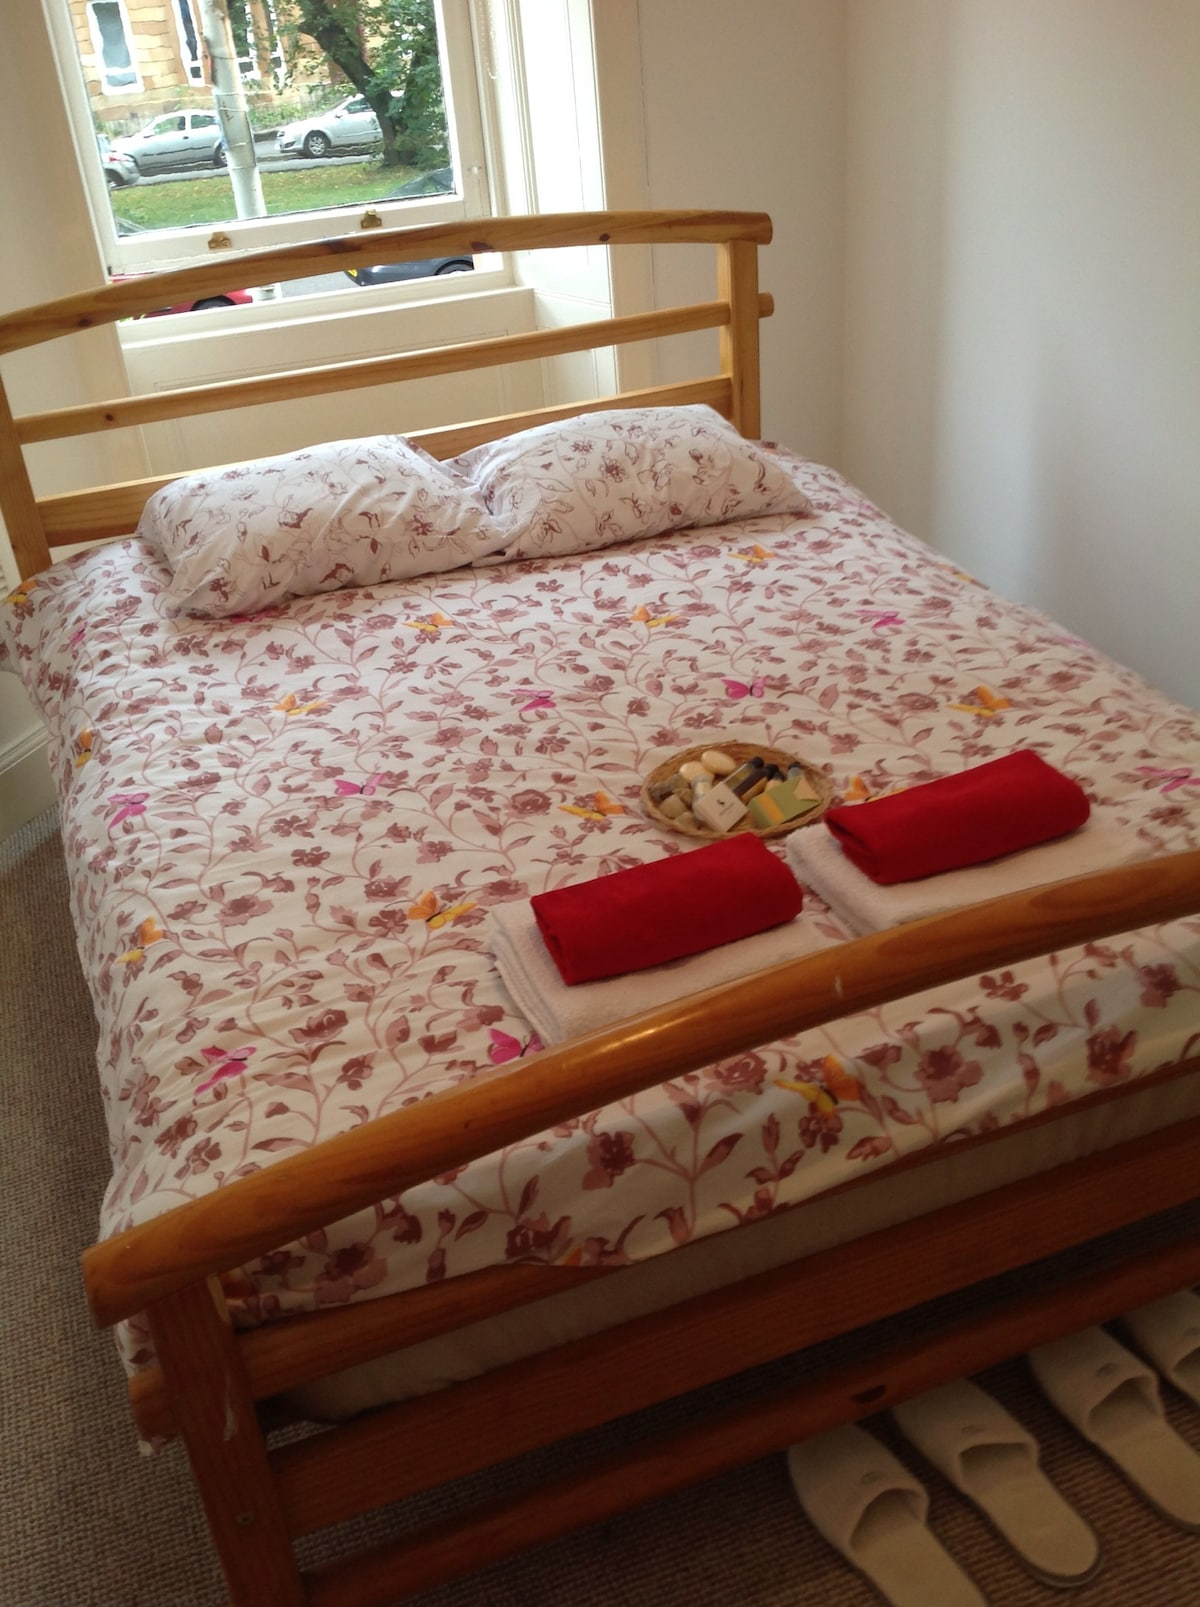 Your Glasgow home bed is waiting for you :)